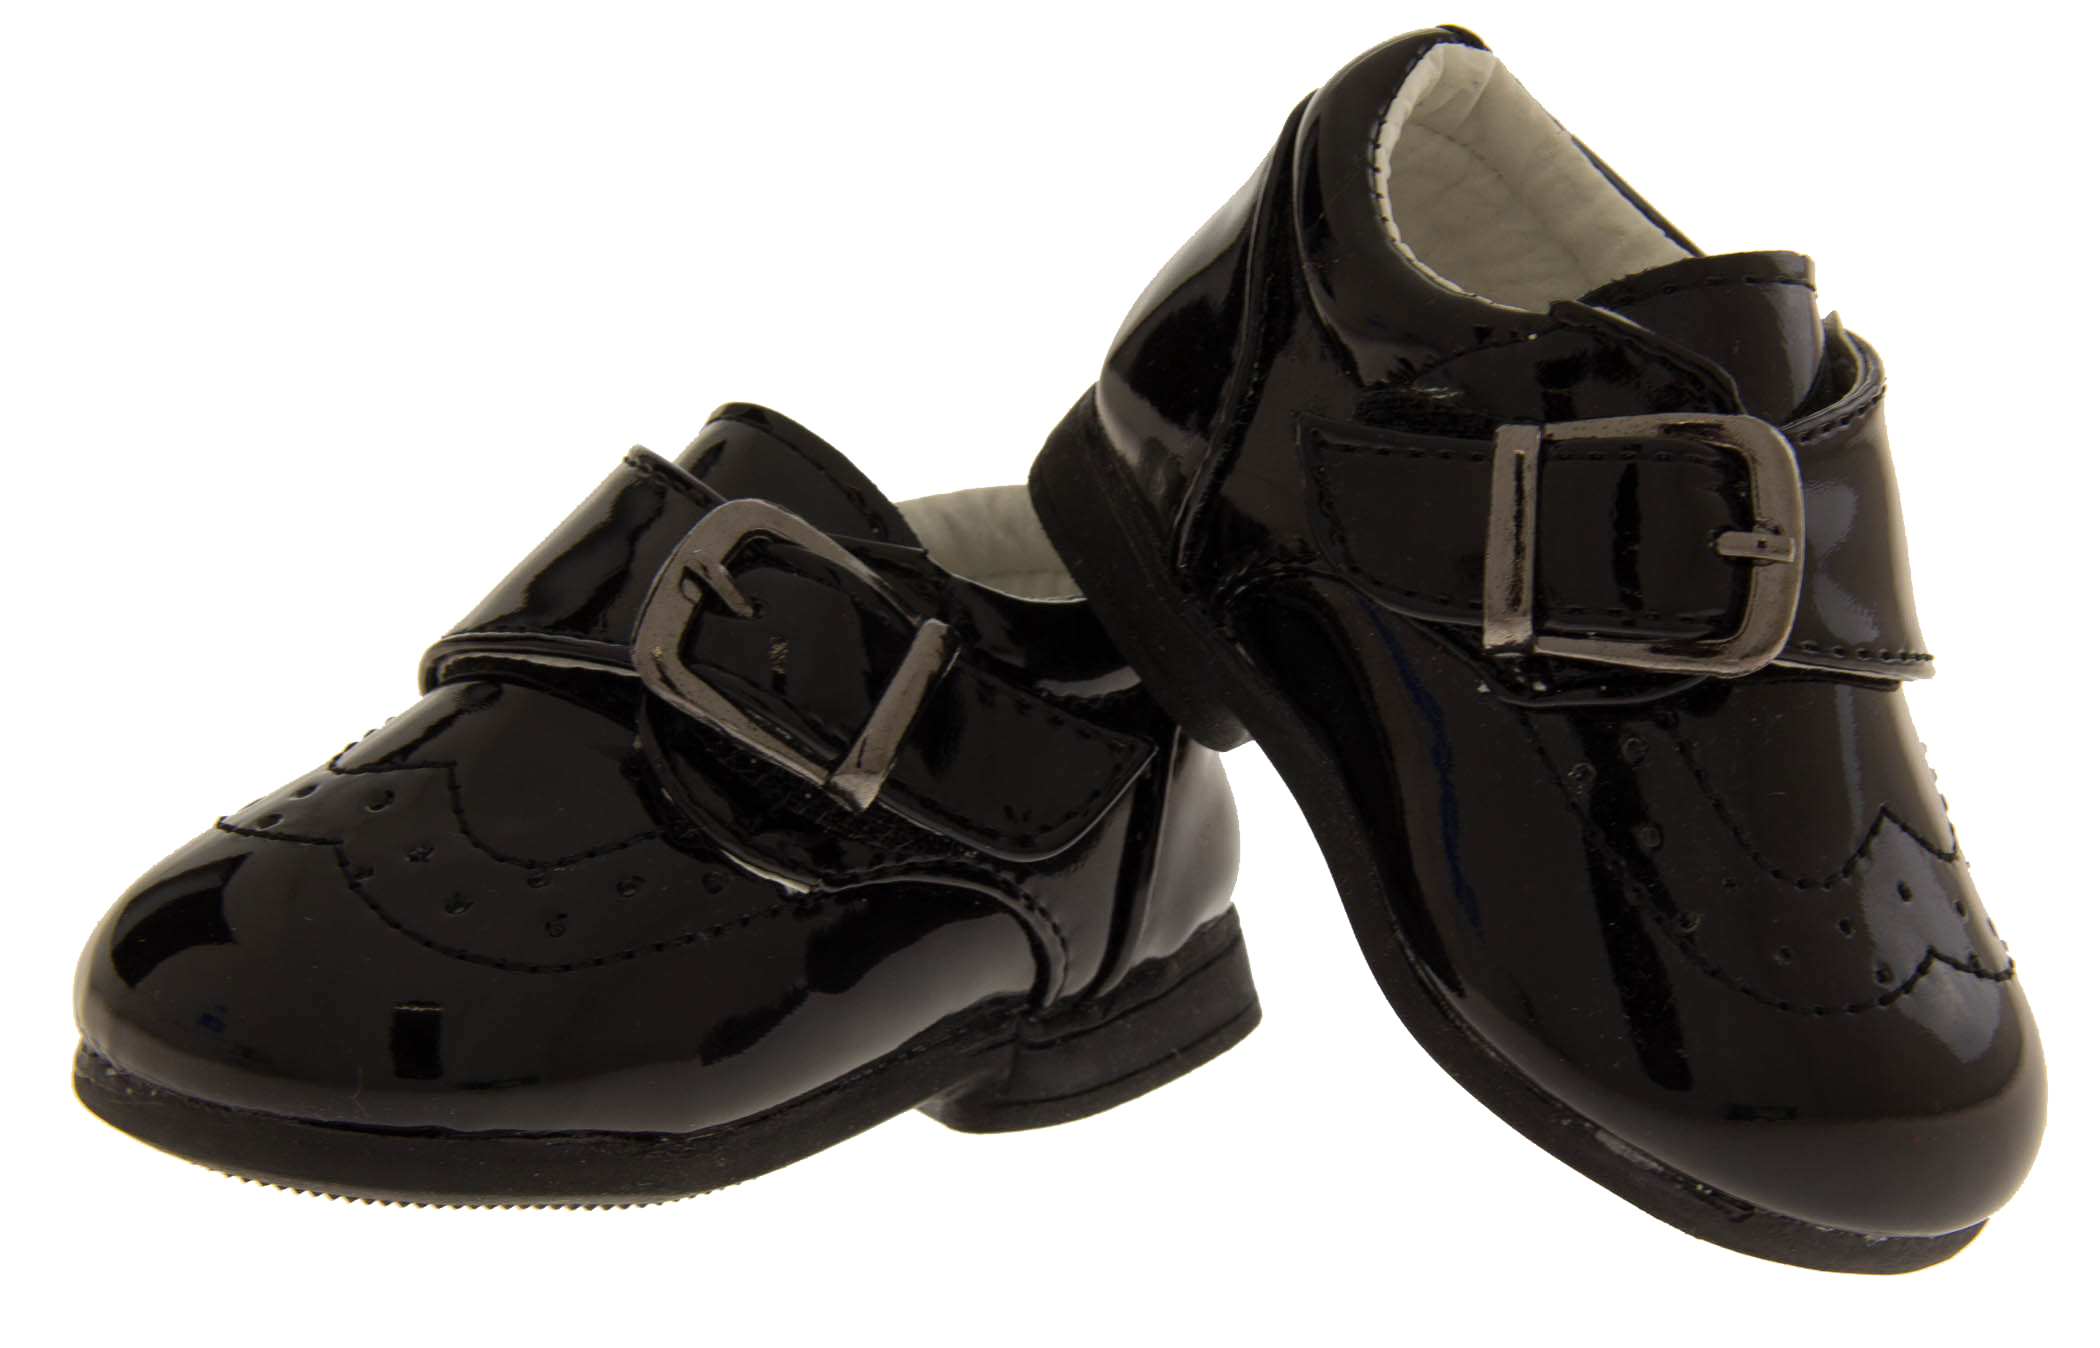 Velcro Buckle Shoes Baby Boy Infant Toddler Black Smart